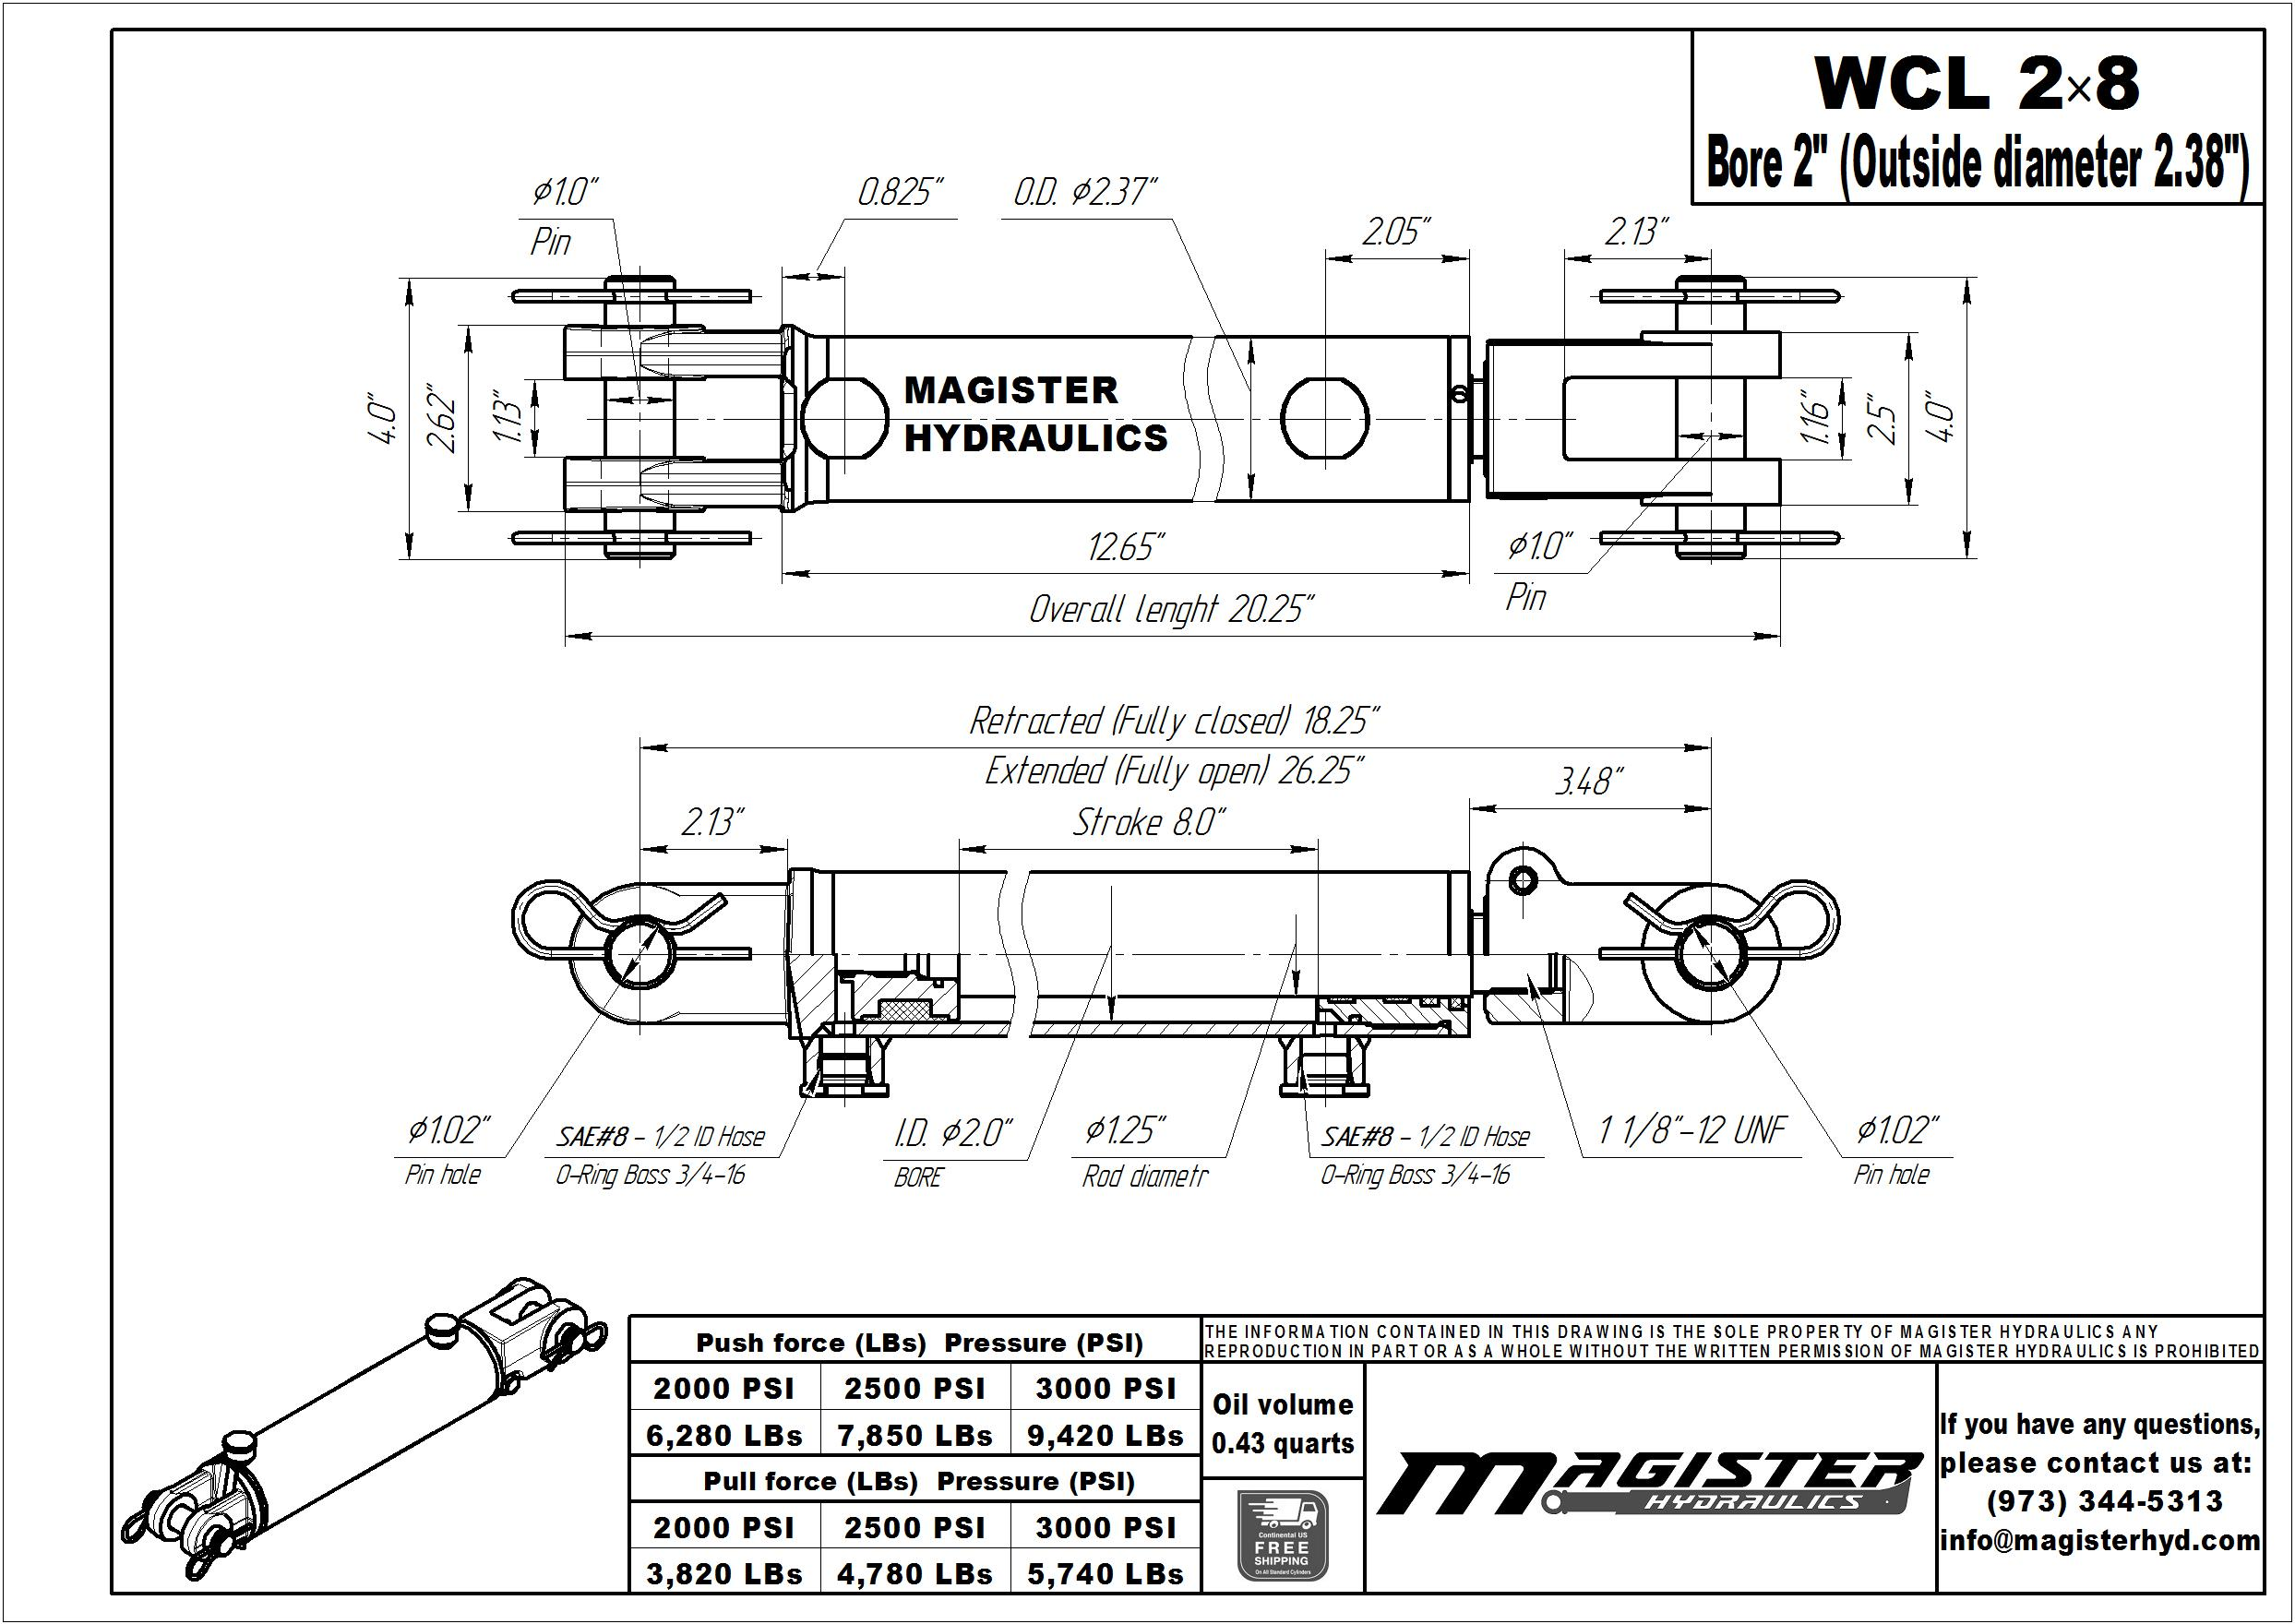 2 bore x 8 stroke hydraulic cylinder, welded clevis double acting cylinder | Magister Hydraulics